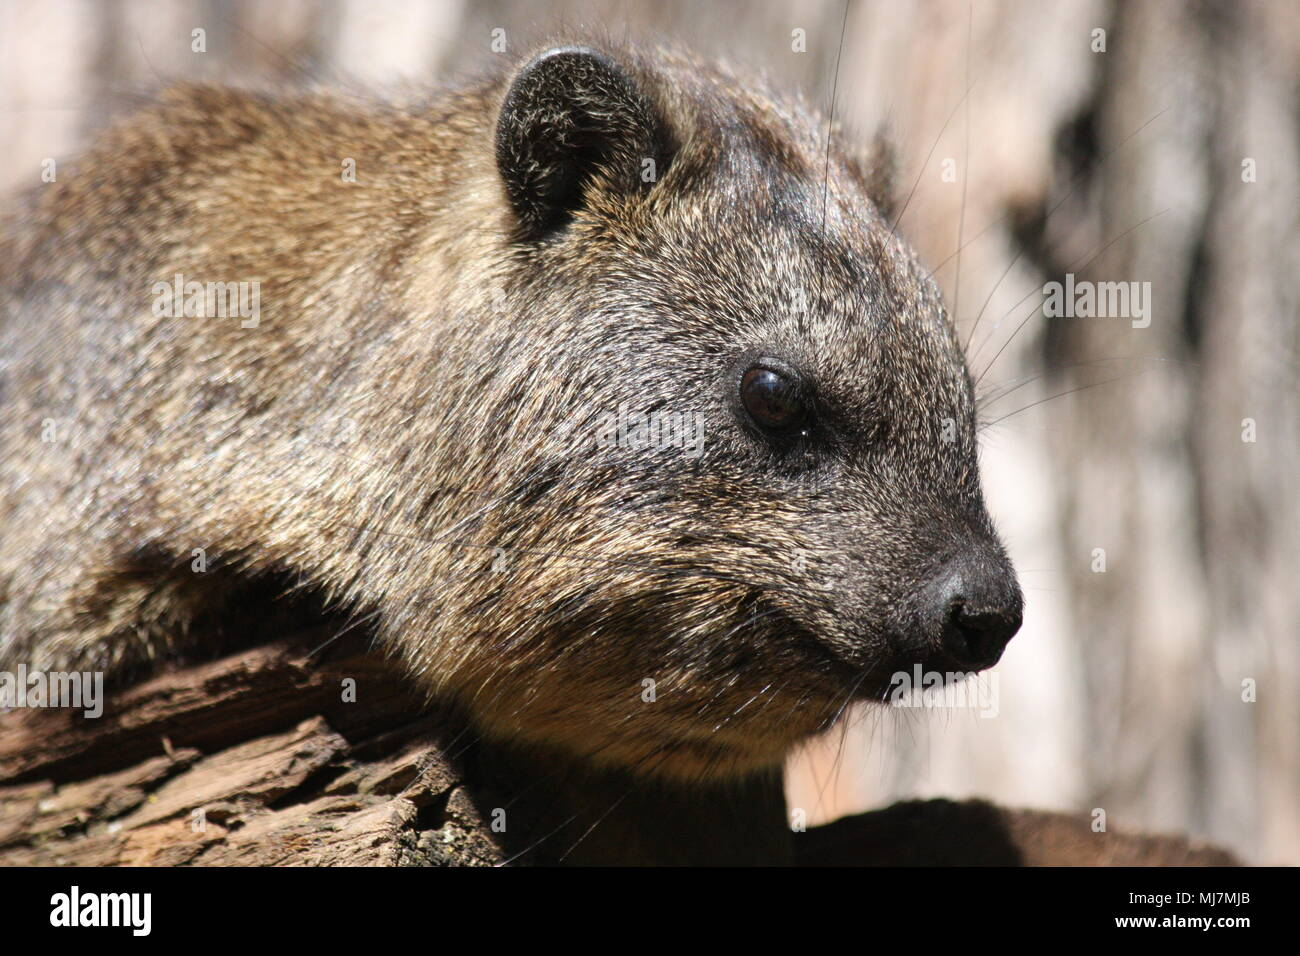 Head shot of a Rock Hyrax - Stock Image